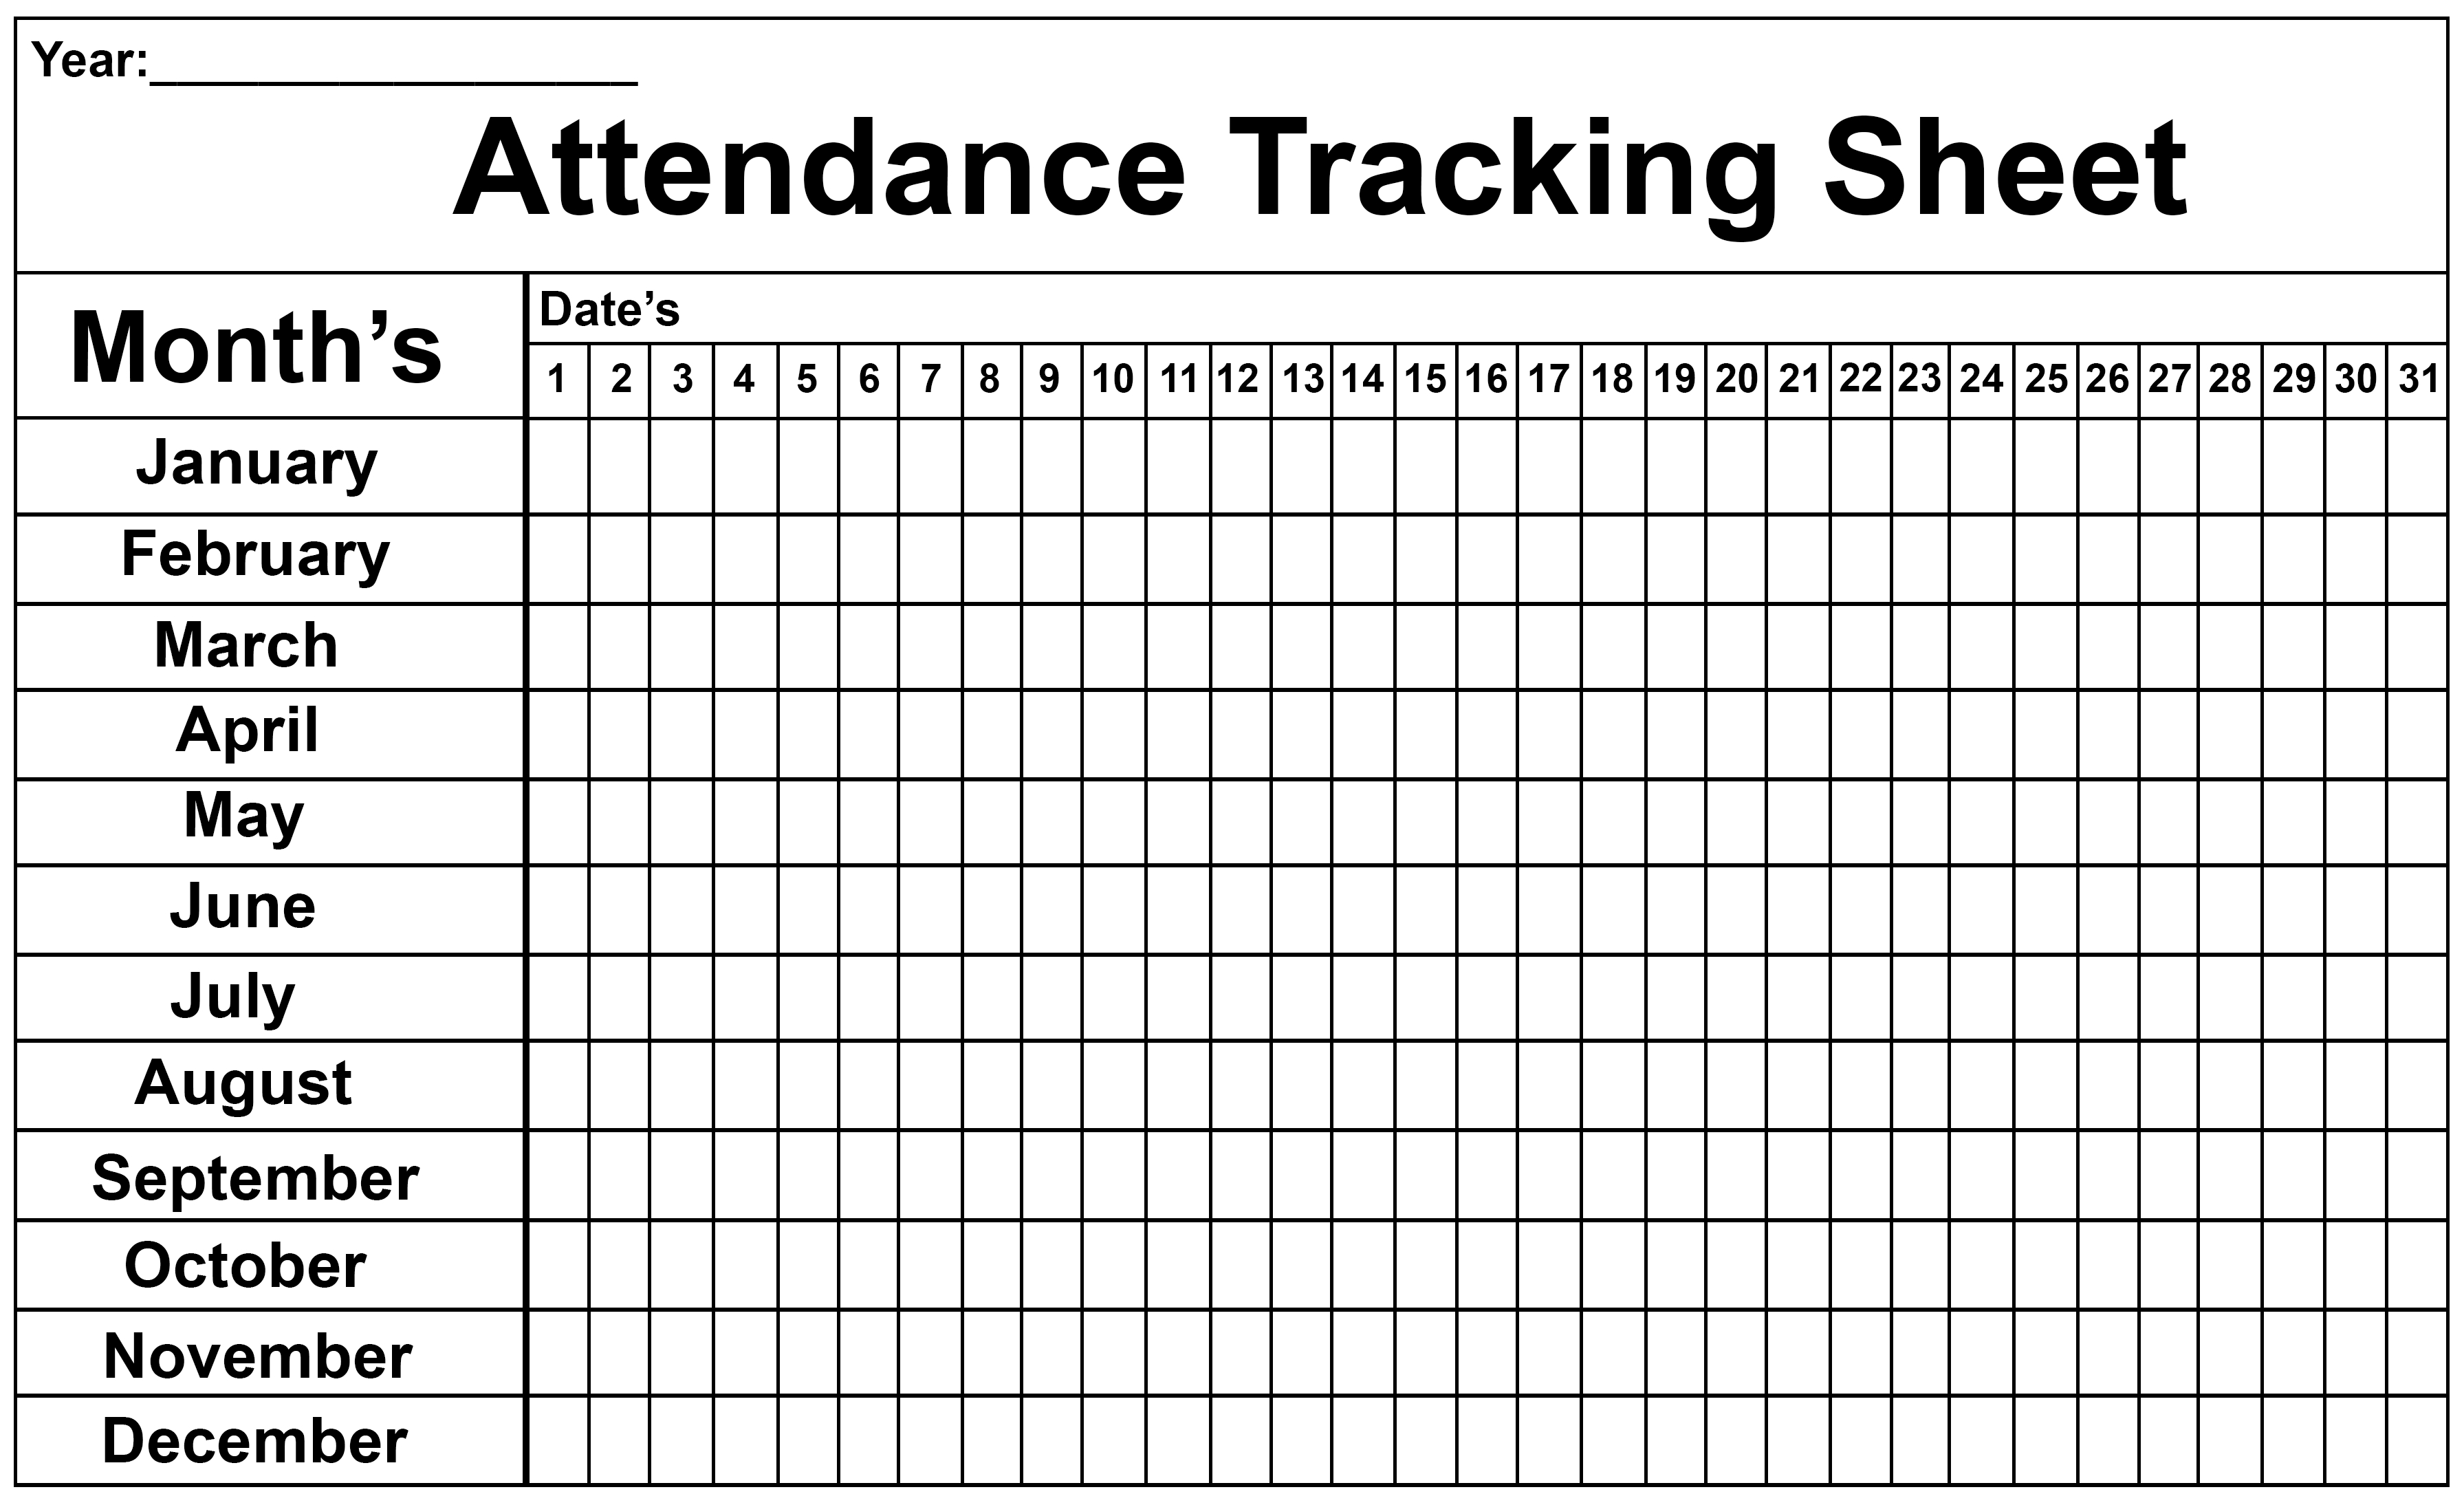 Employee Attendance Tracker Sheet 2019 | Printable Calendar Diy